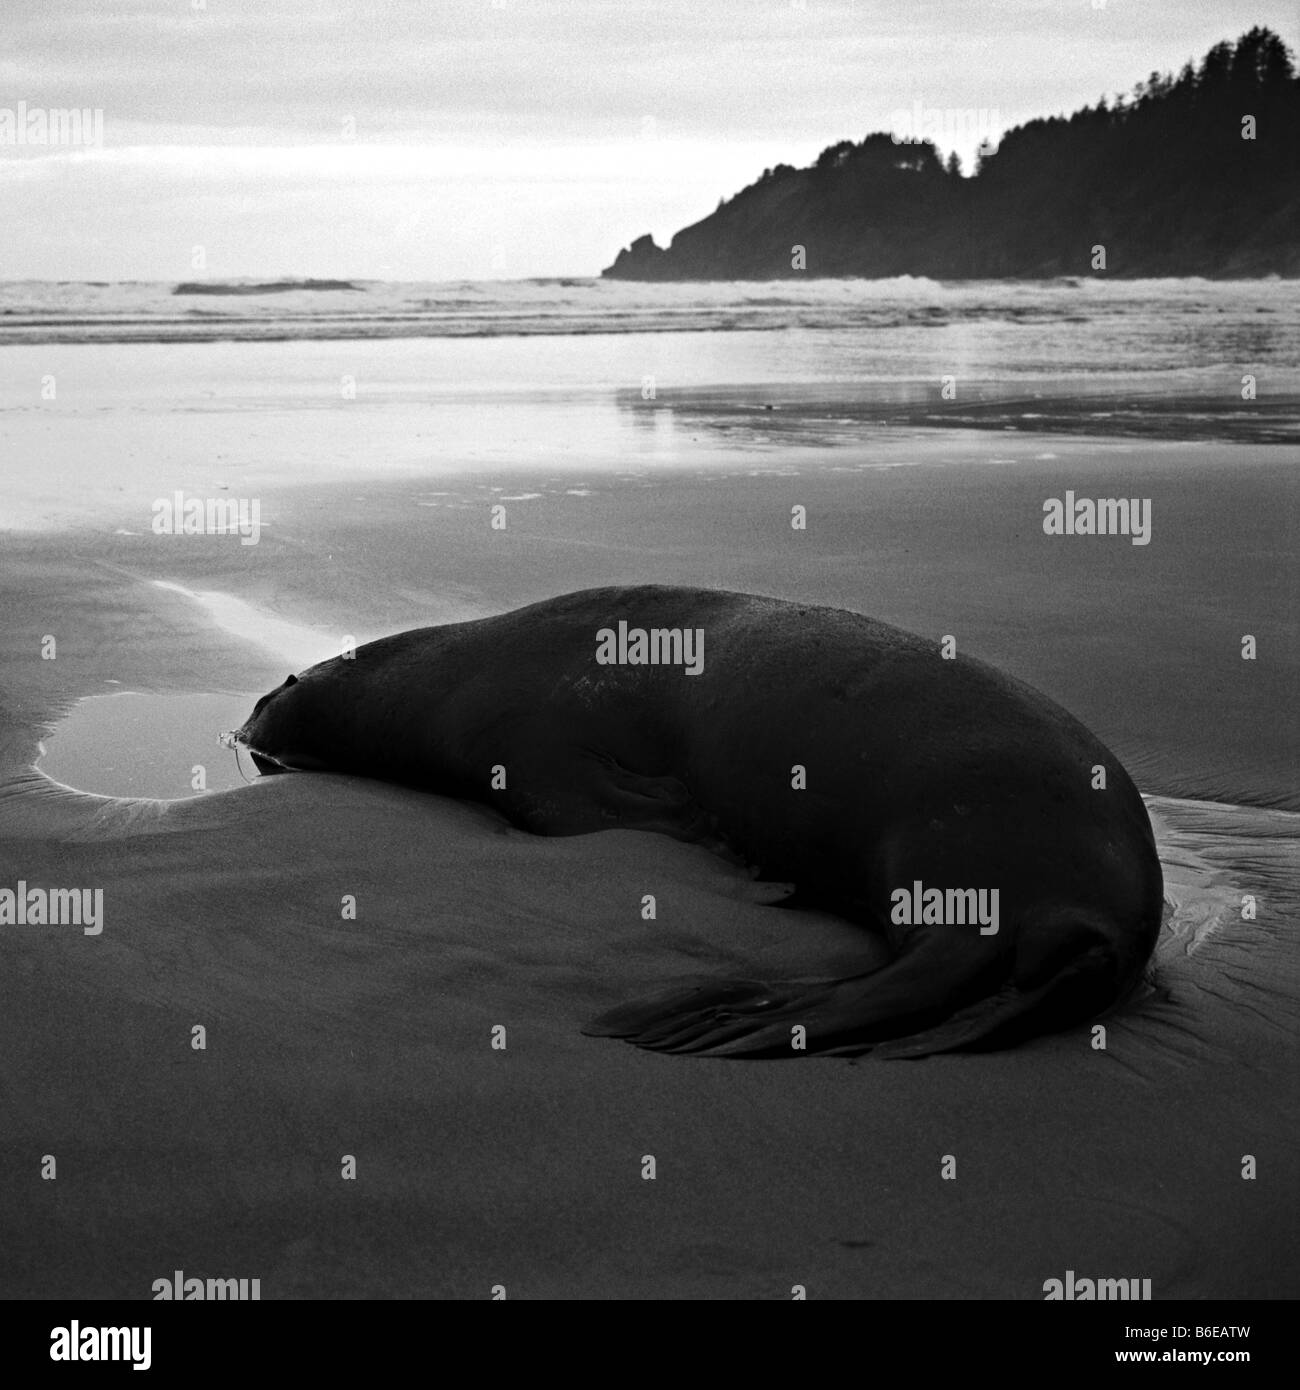 A dead sea lion on Short Sands Beach in Oregon. - Stock Image